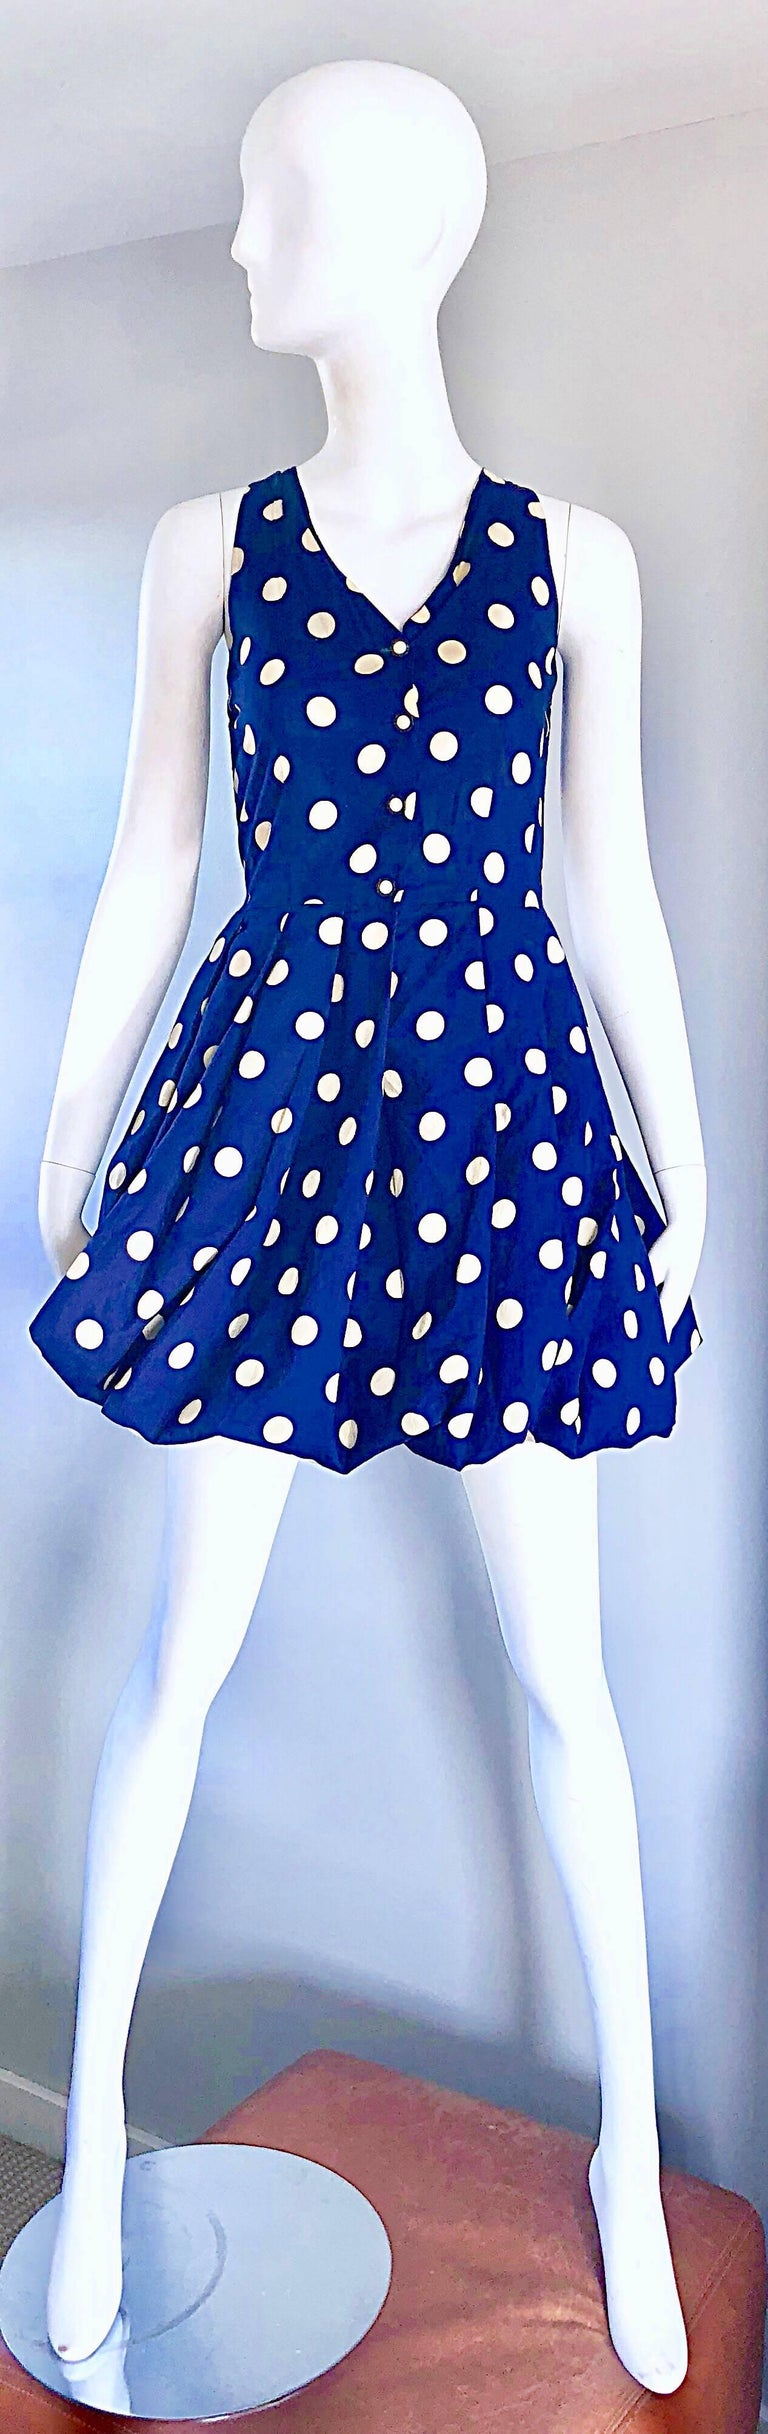 1990s Sergio Tegon Navy Blue and White Italian Cotton 90s Vintage Bubble Dress For Sale 4